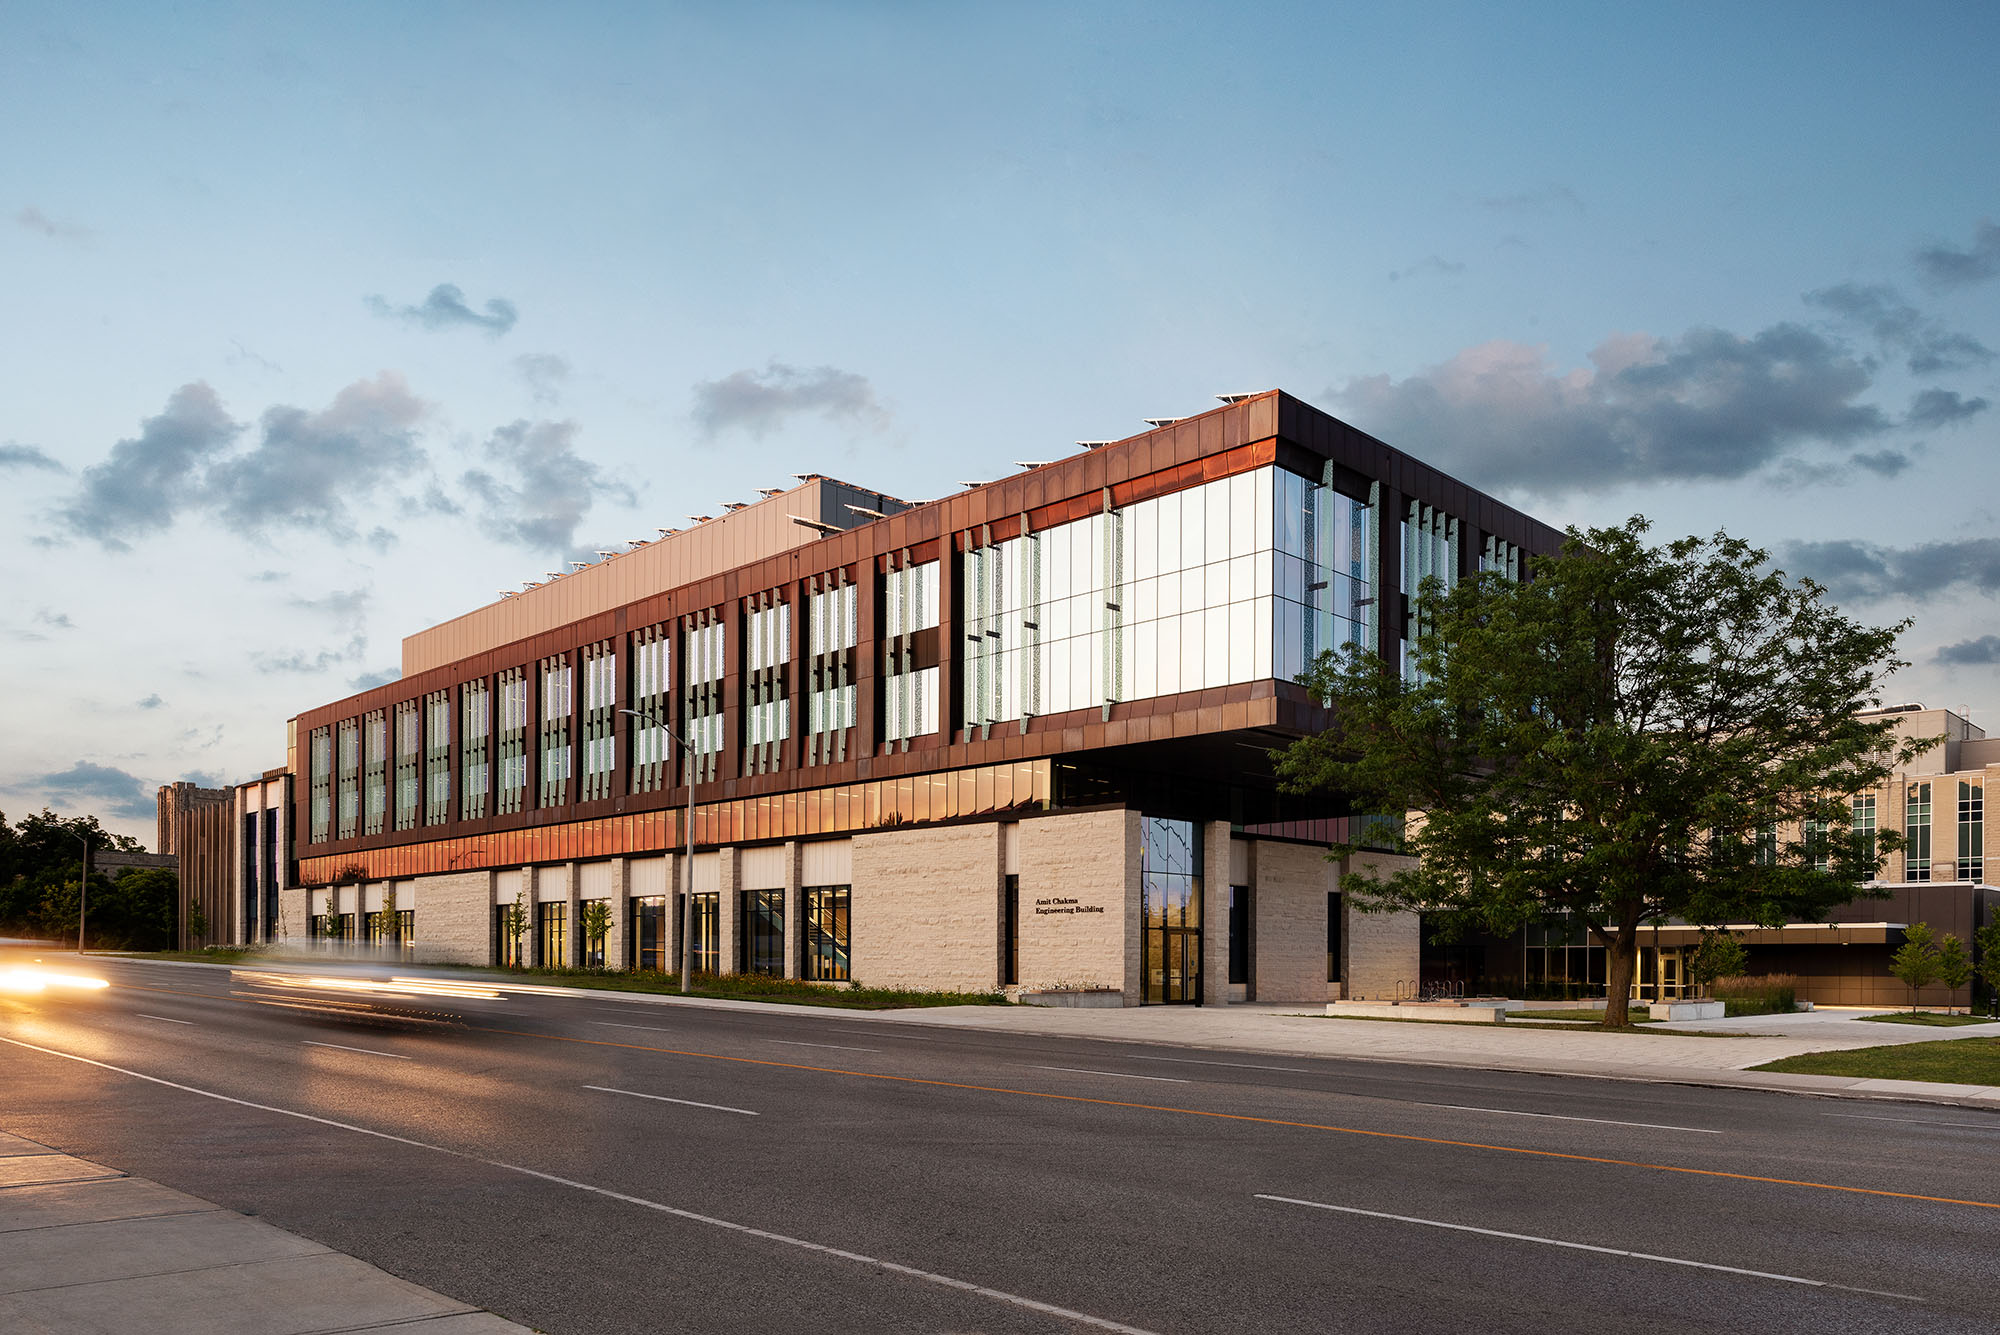 Supporting image for Western University Engineering Building